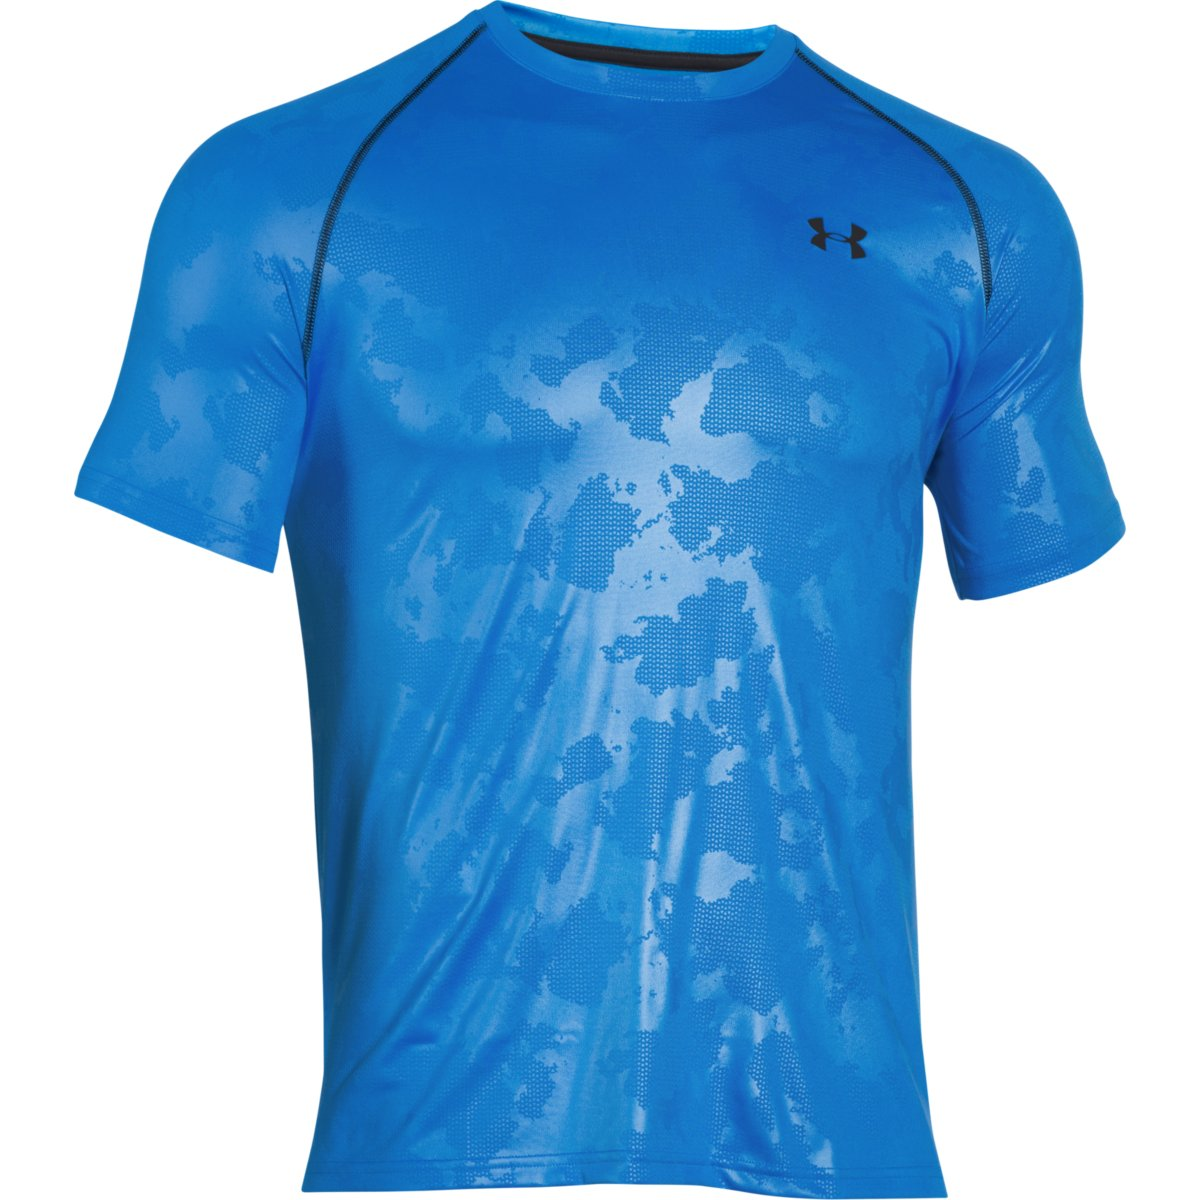 Under Armour Men's Tech Patterned Short-Sleeve T-Shirt - Blue, S